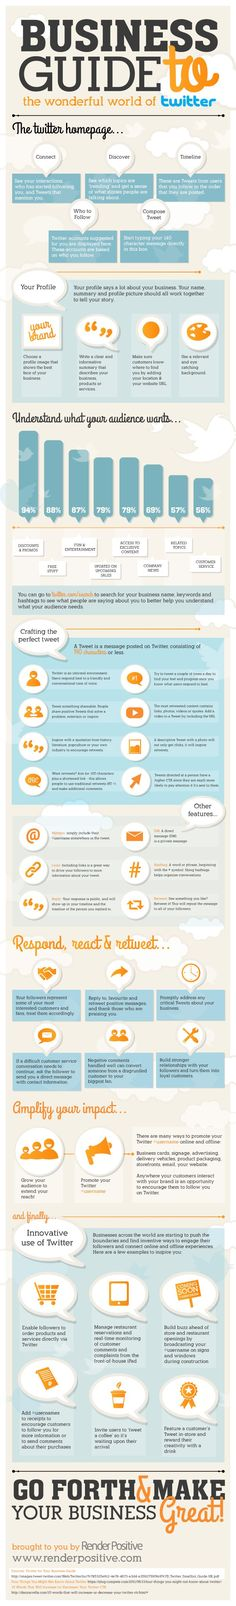 The Business Guide to Twitter - Infographic